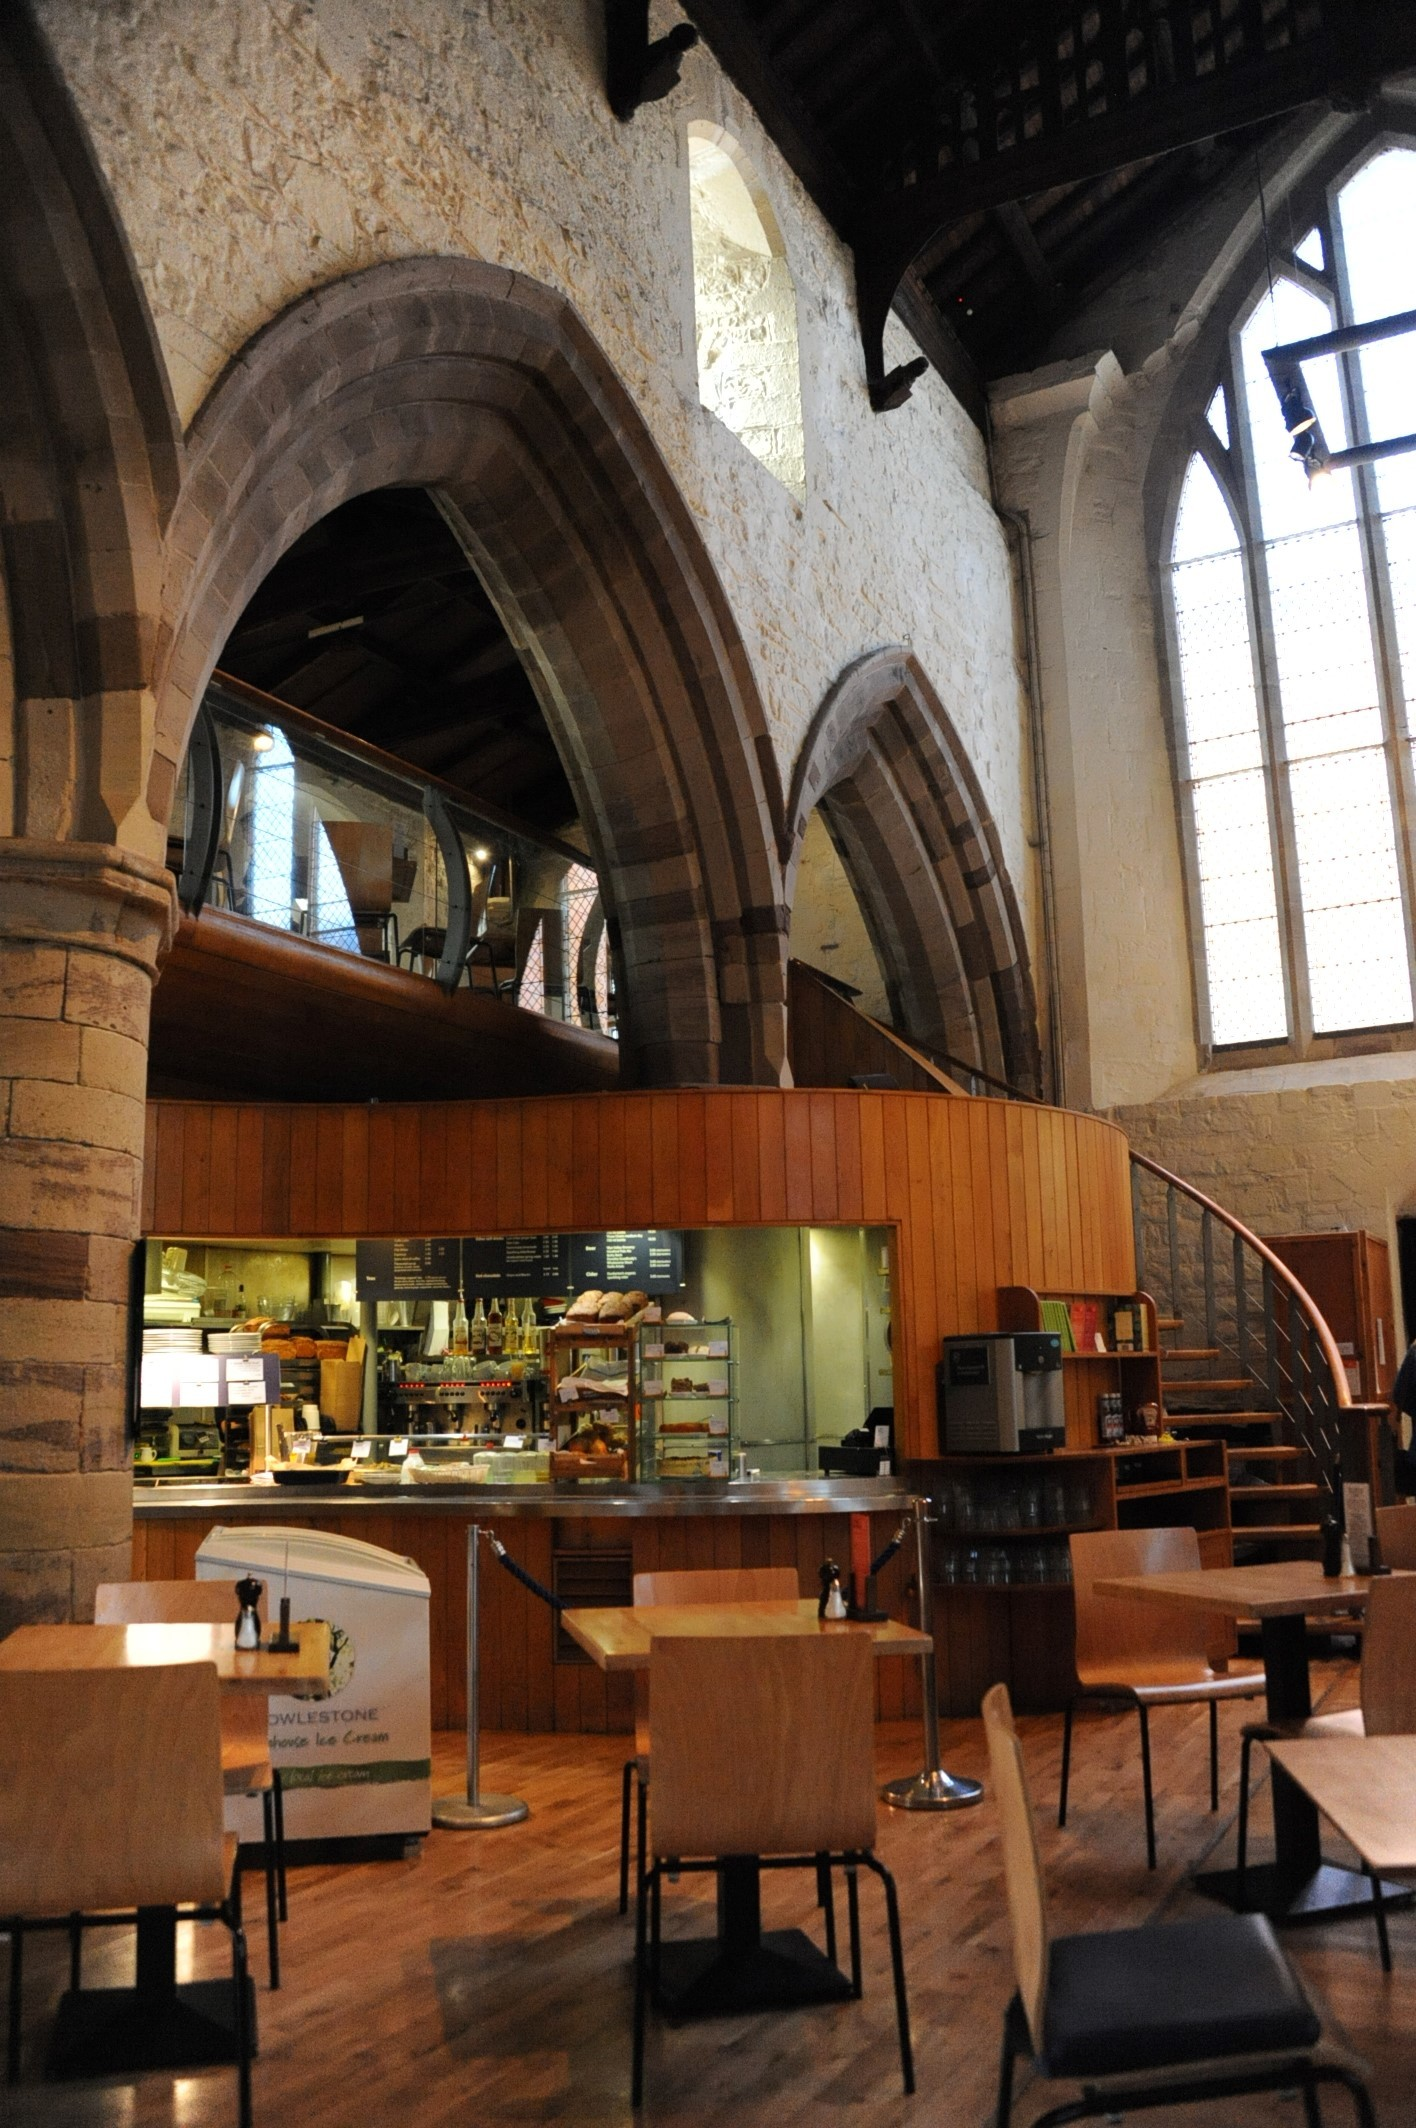 The money was stolen from Café @ All Saints in Hereford